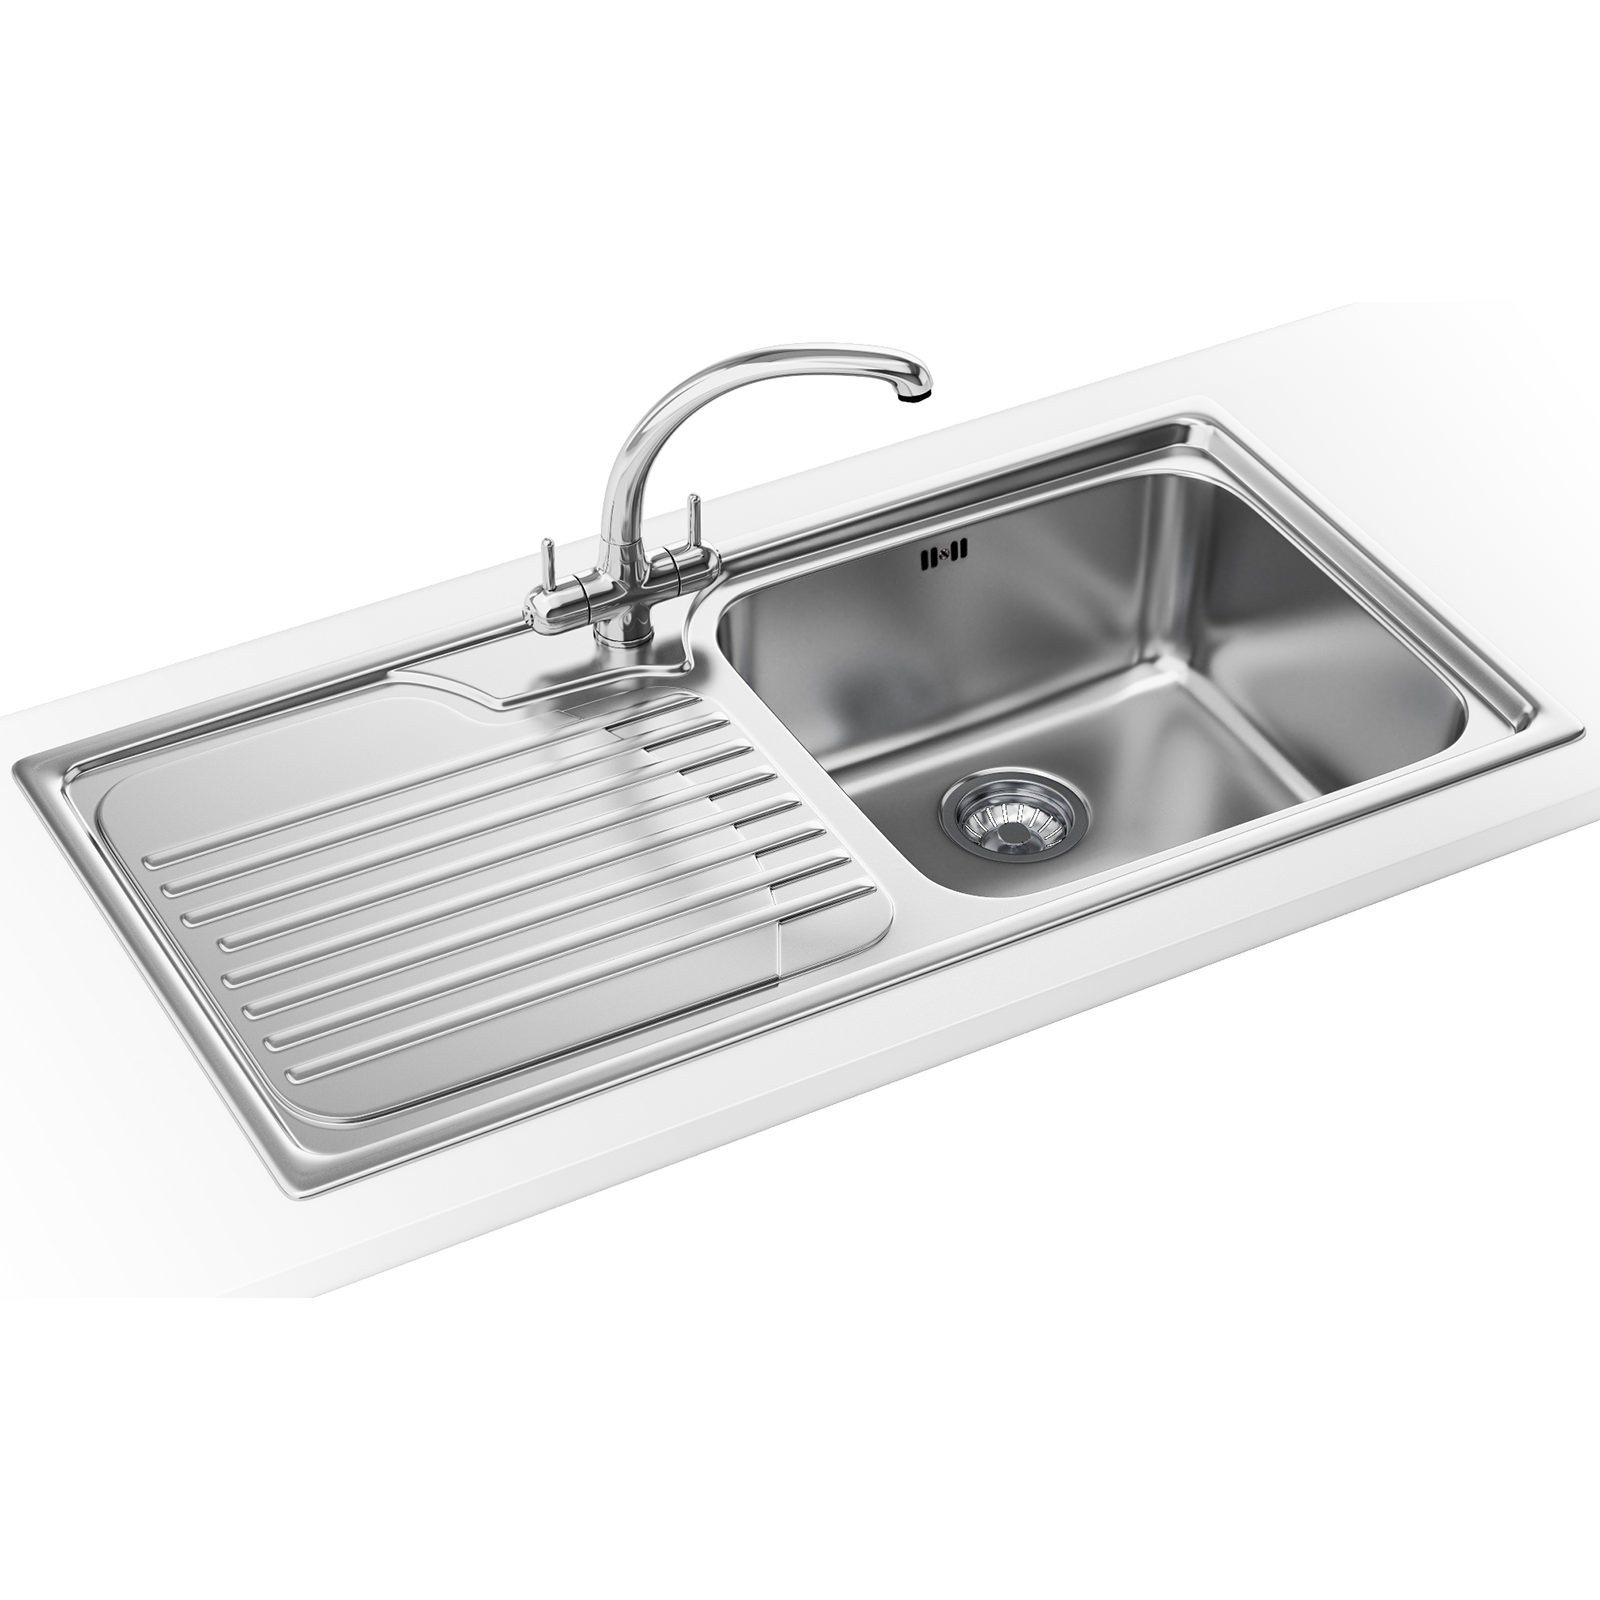 Franke Galassia Sink : Franke Galassia Propack GAX 611 Stainless Steel Kitchen Sink And Tap